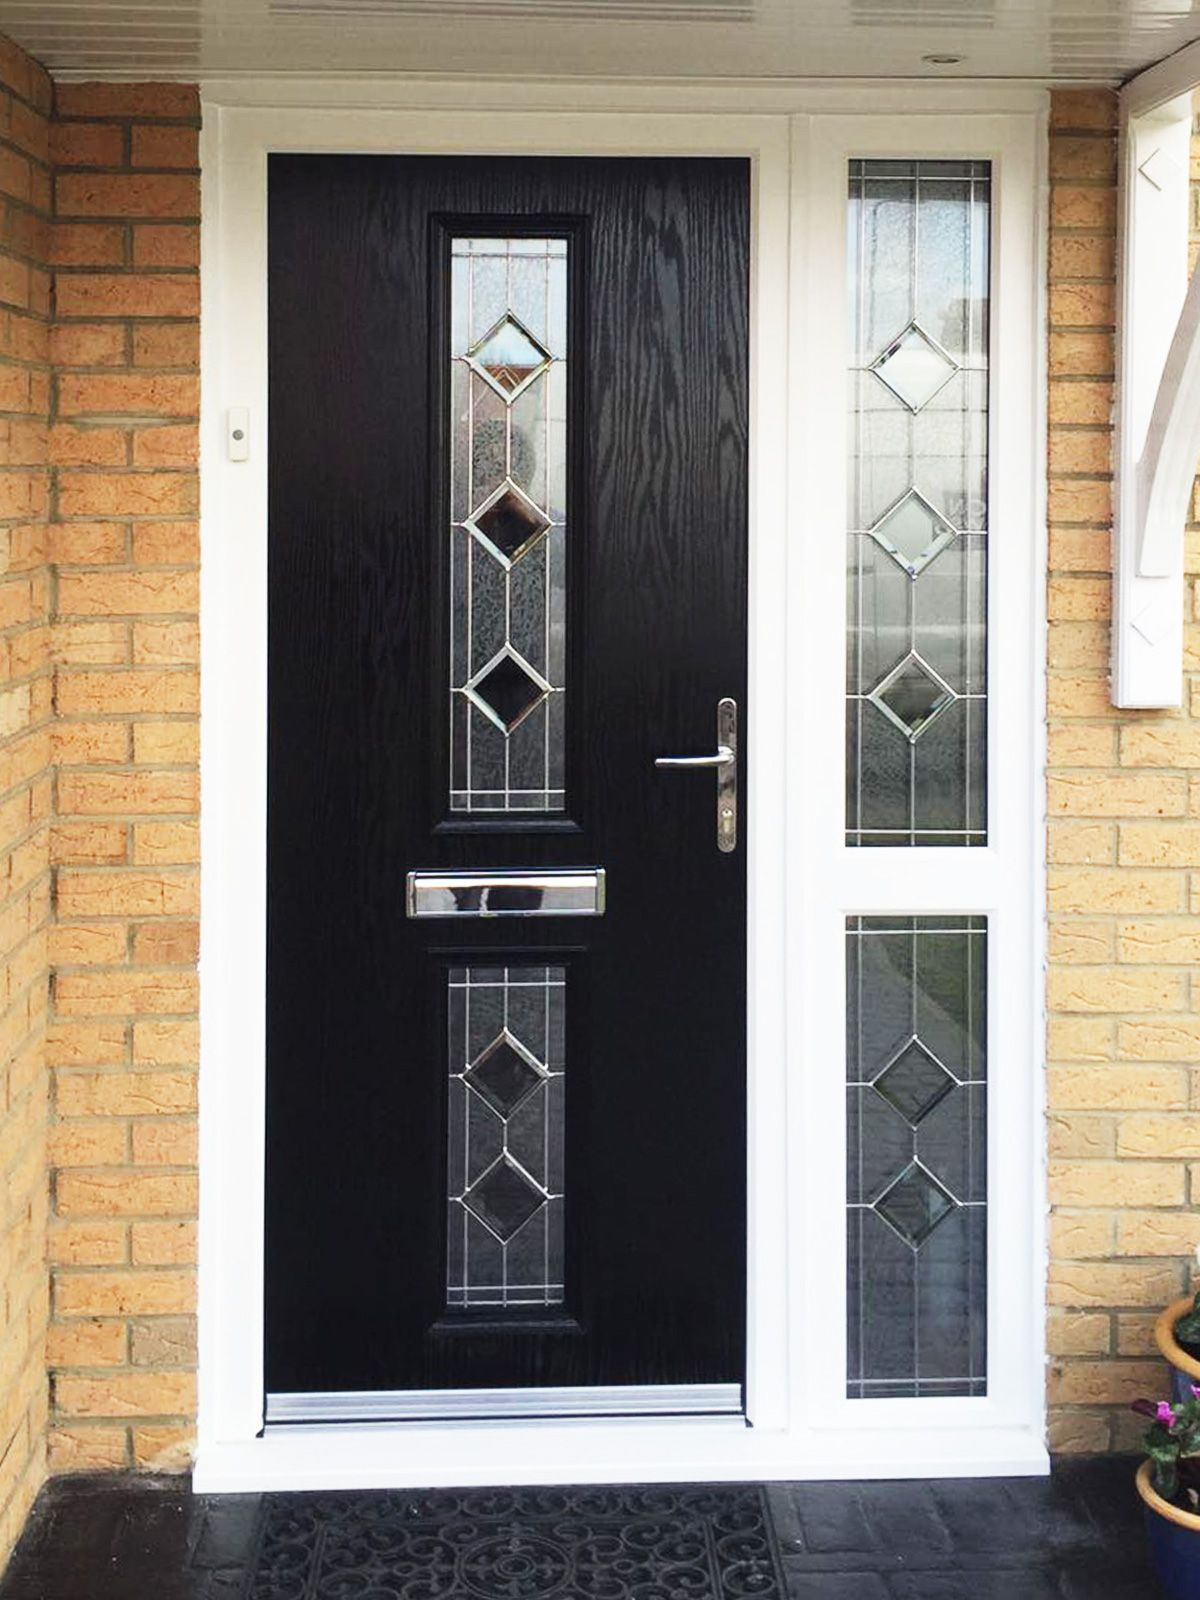 Modern front doors black - Modern And Unique Bloomberg C Design Composite Door In Black With Simplicity Glass Design